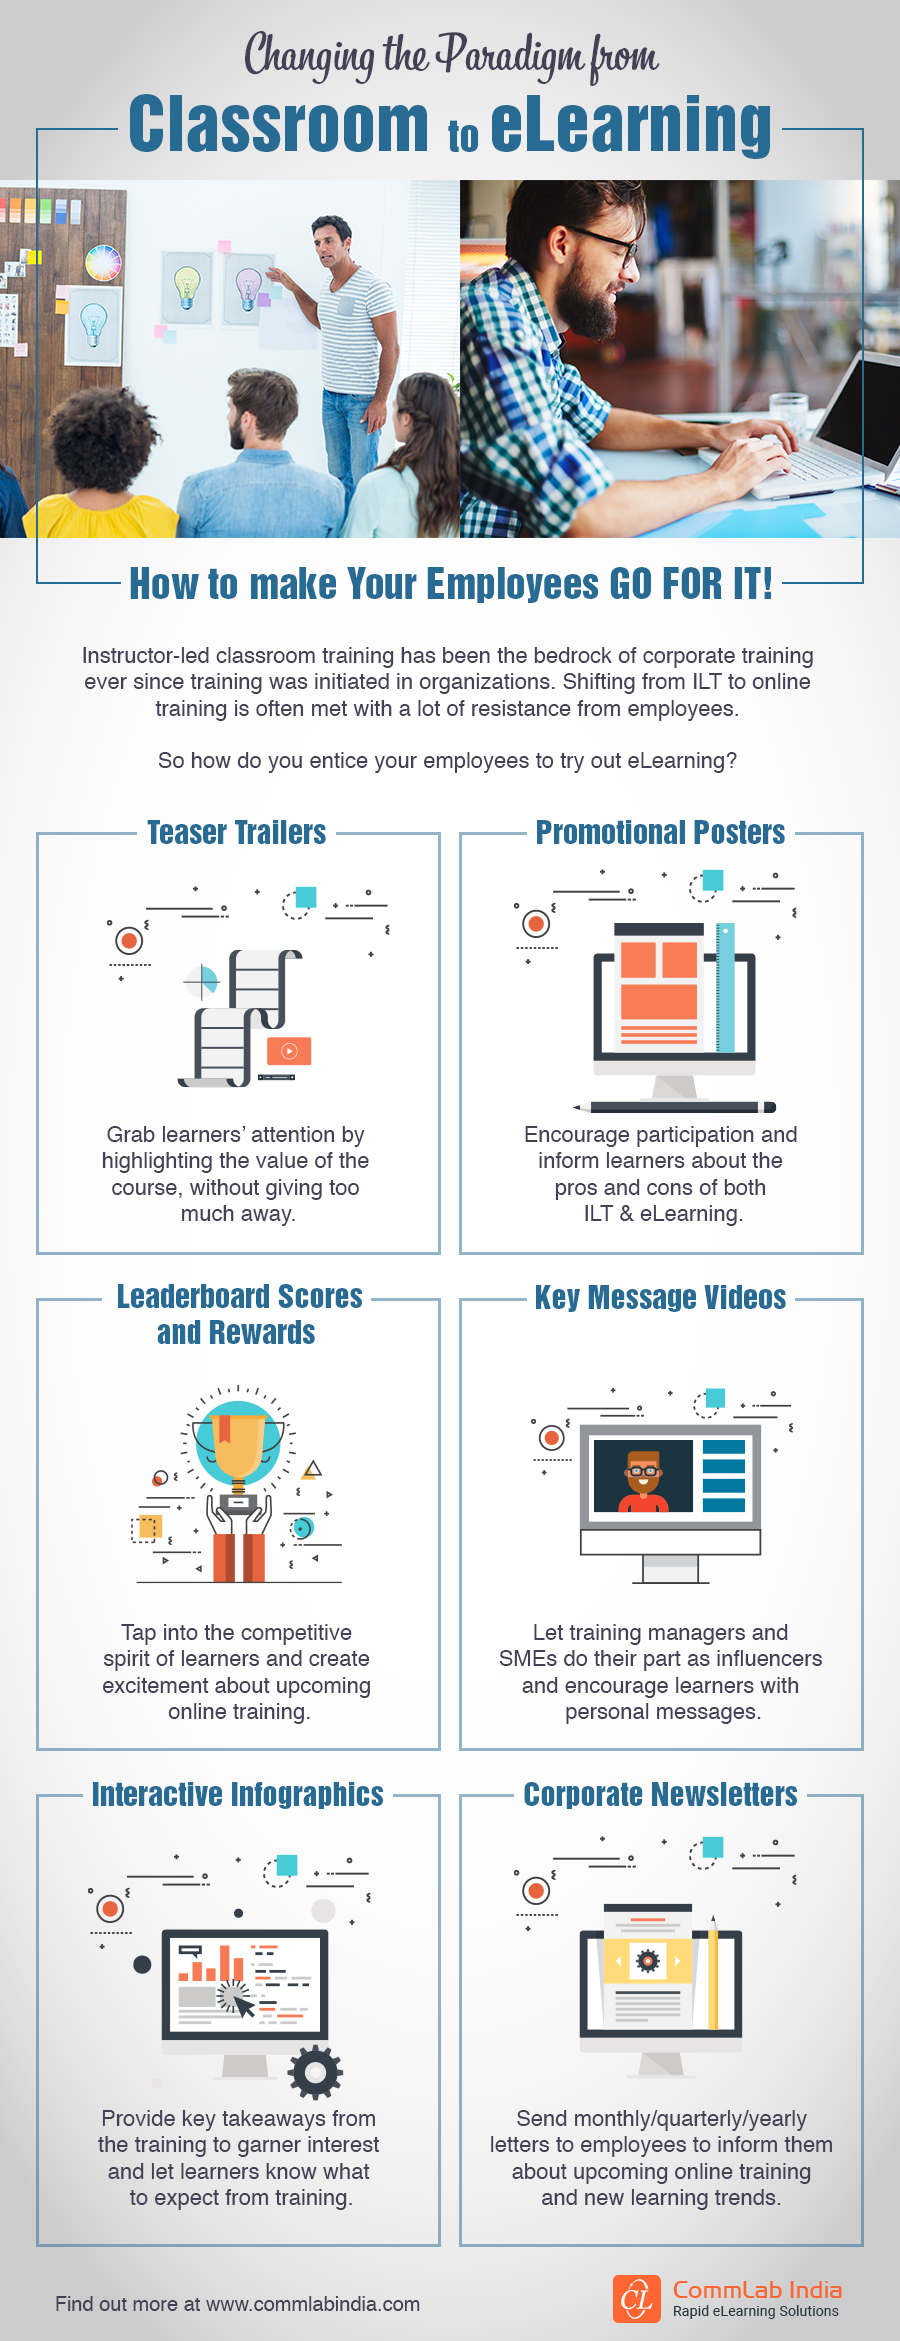 Changing the Paradigm from Classroom to eLearning [Infographic]